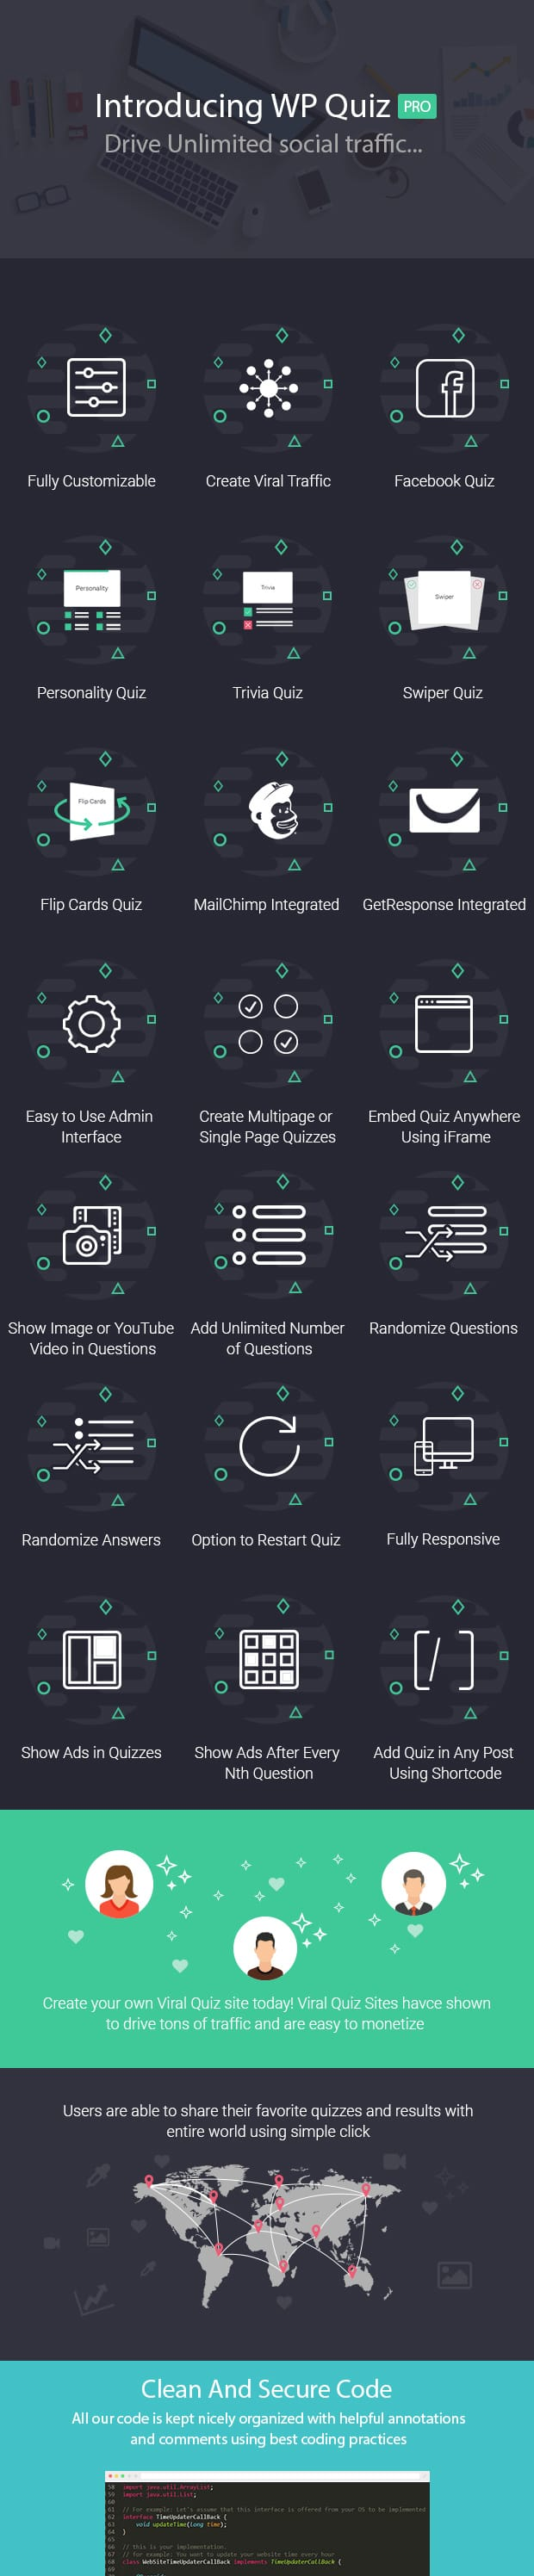 WP Quiz Pro - Premium WordPress Quiz Plugin @ MyThemeShop